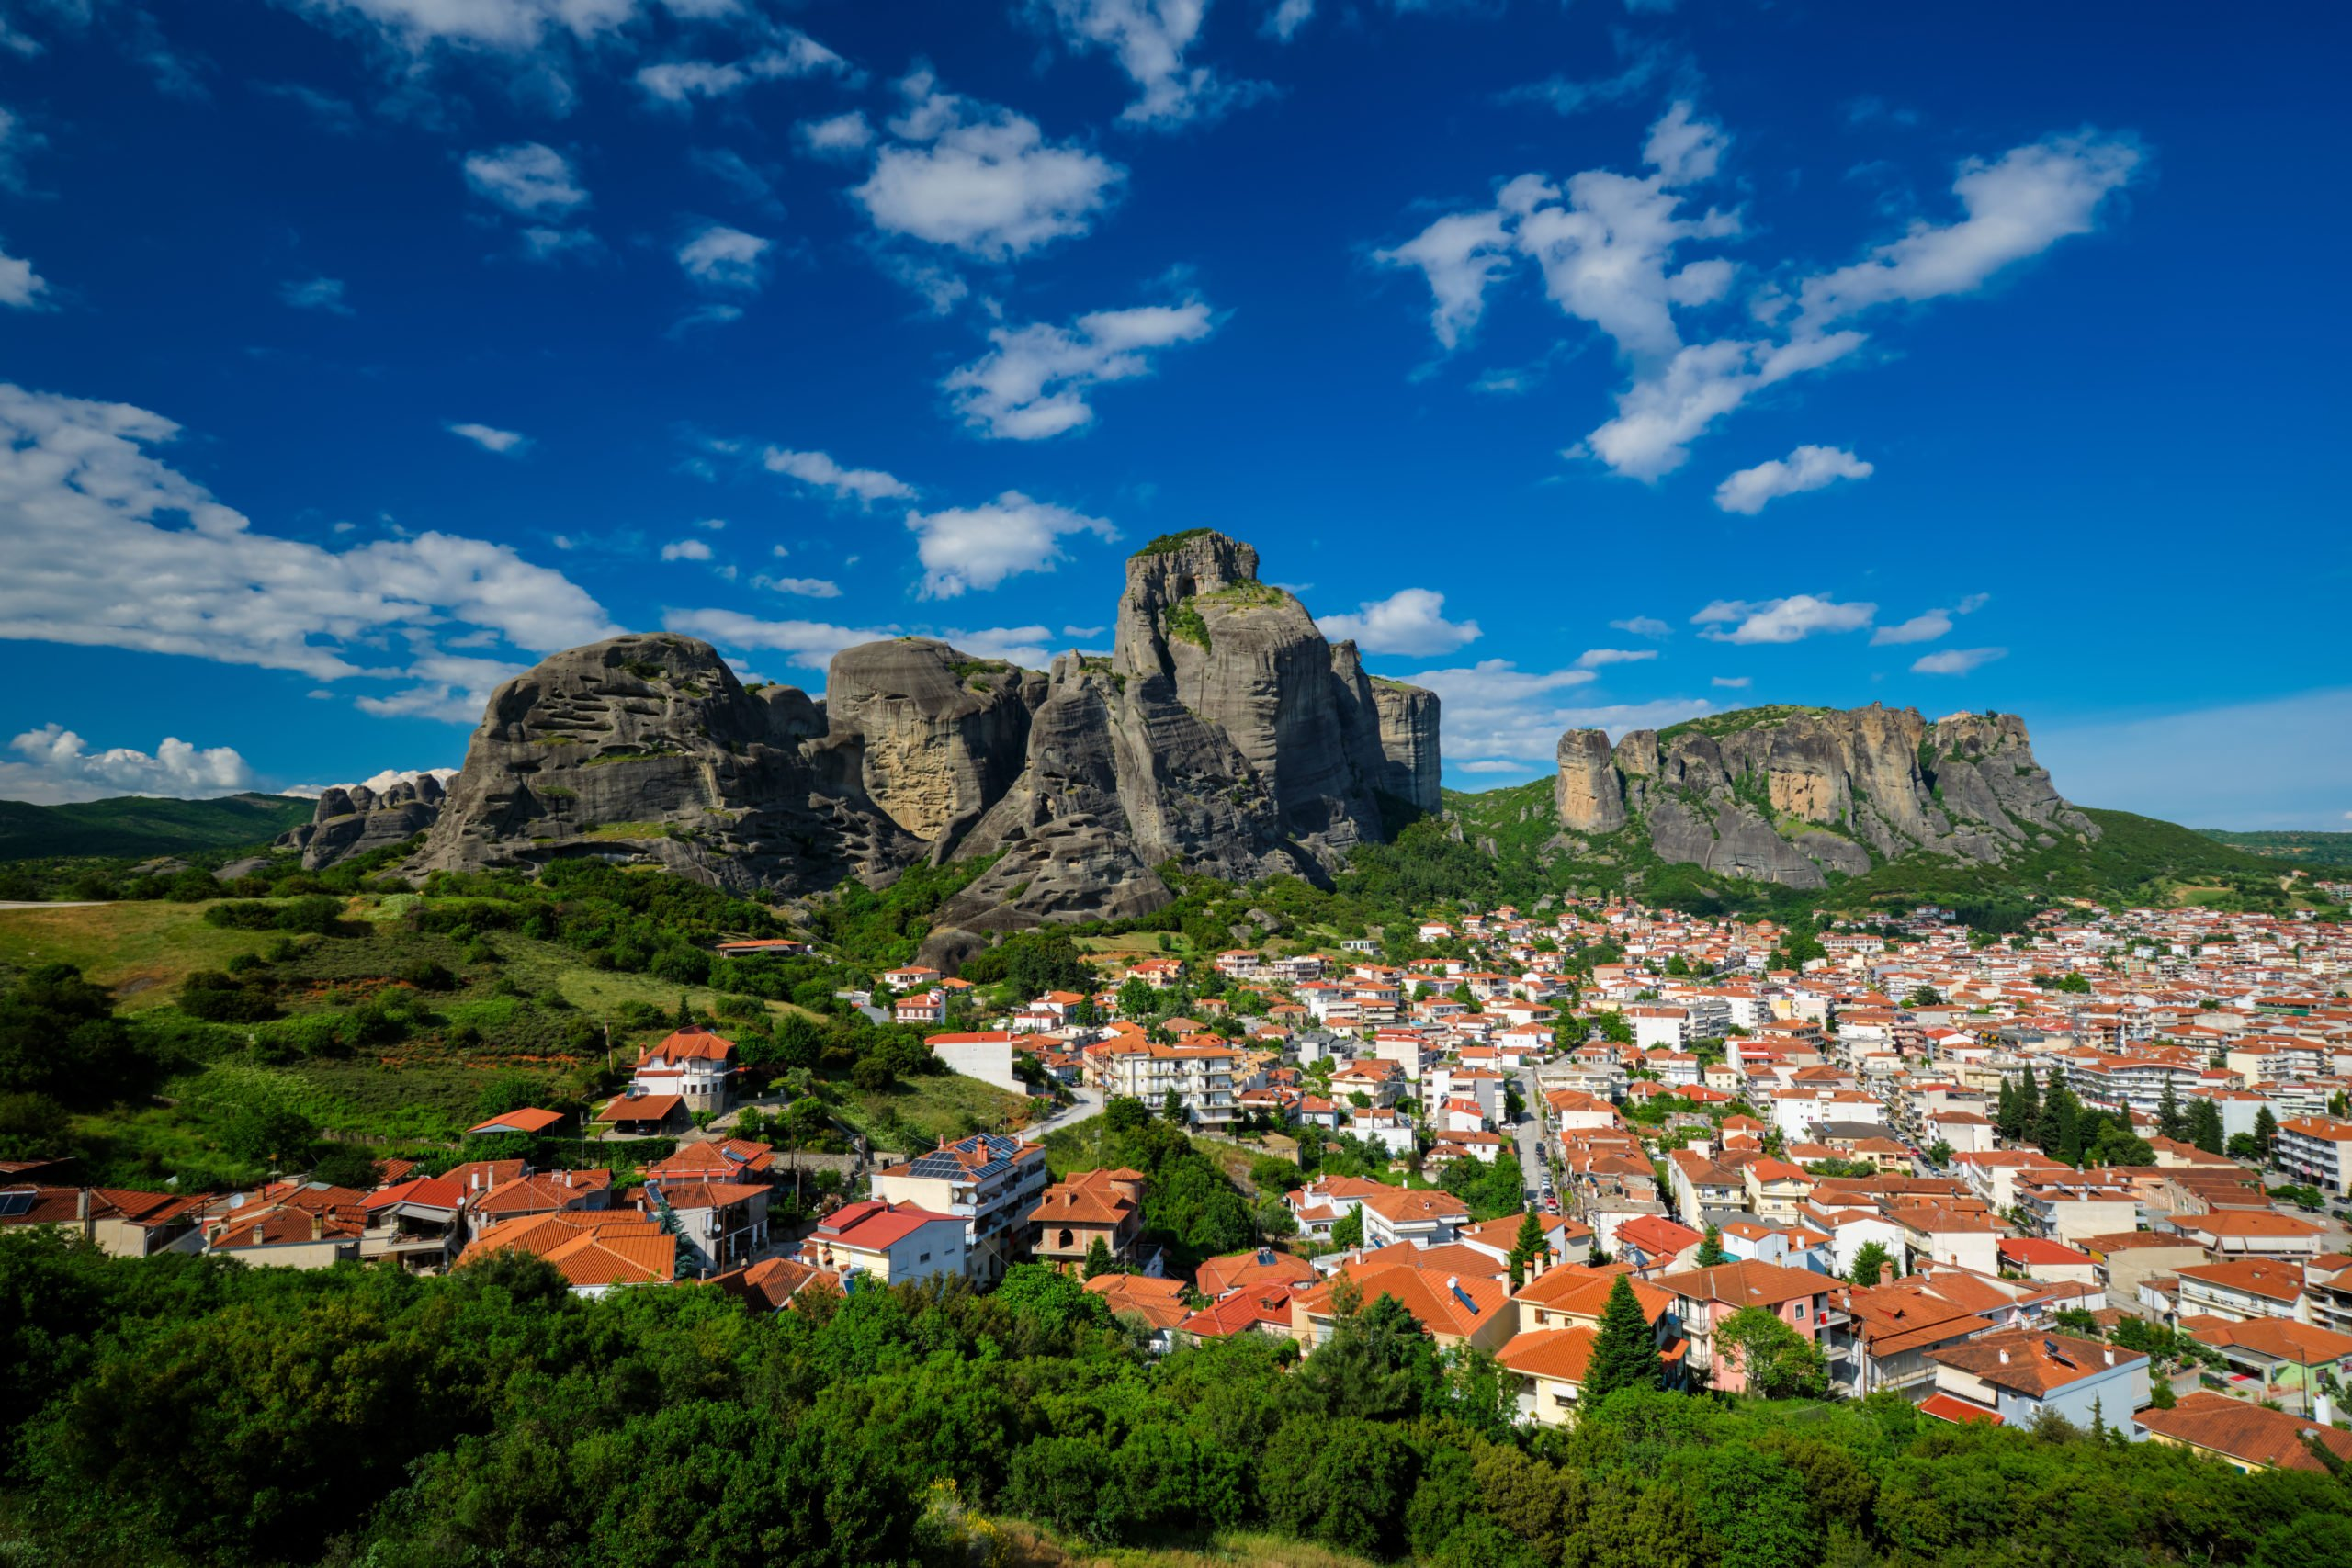 Enjoy 3 Days In Meteora To Discover The Stunning Location And Learn About The Rich History On The Meteora 3 Day Tour From Athens And Thessaloniki By Train